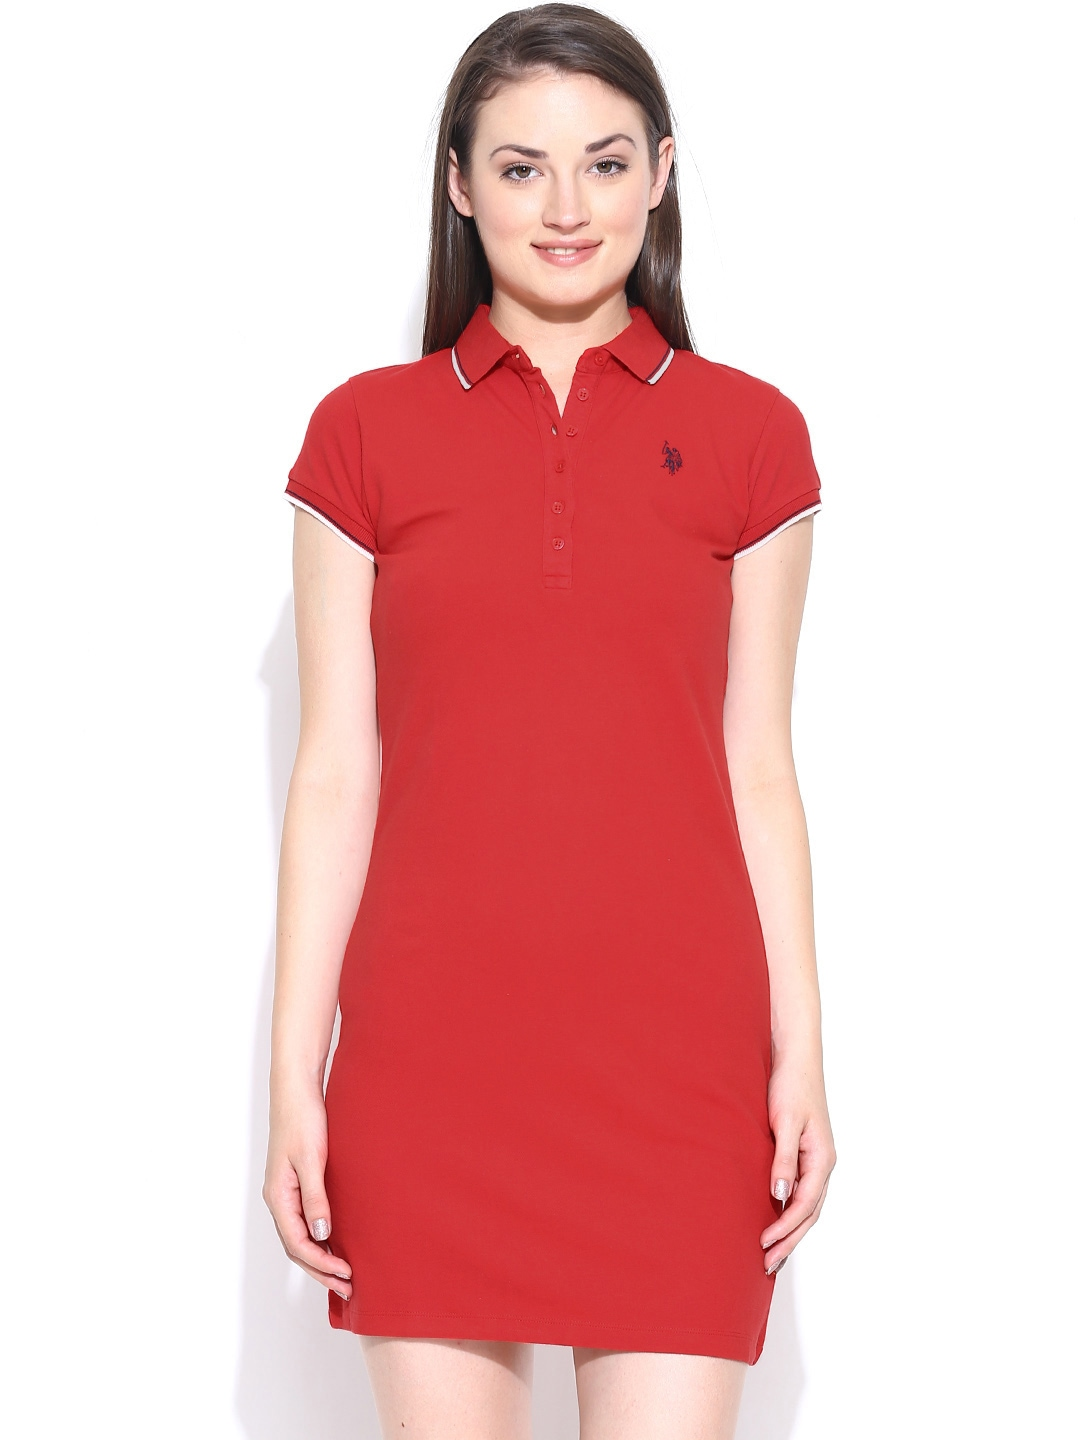 Myntra U.S. Polo Assn. Women Red T-shirt Dress 819301 ...